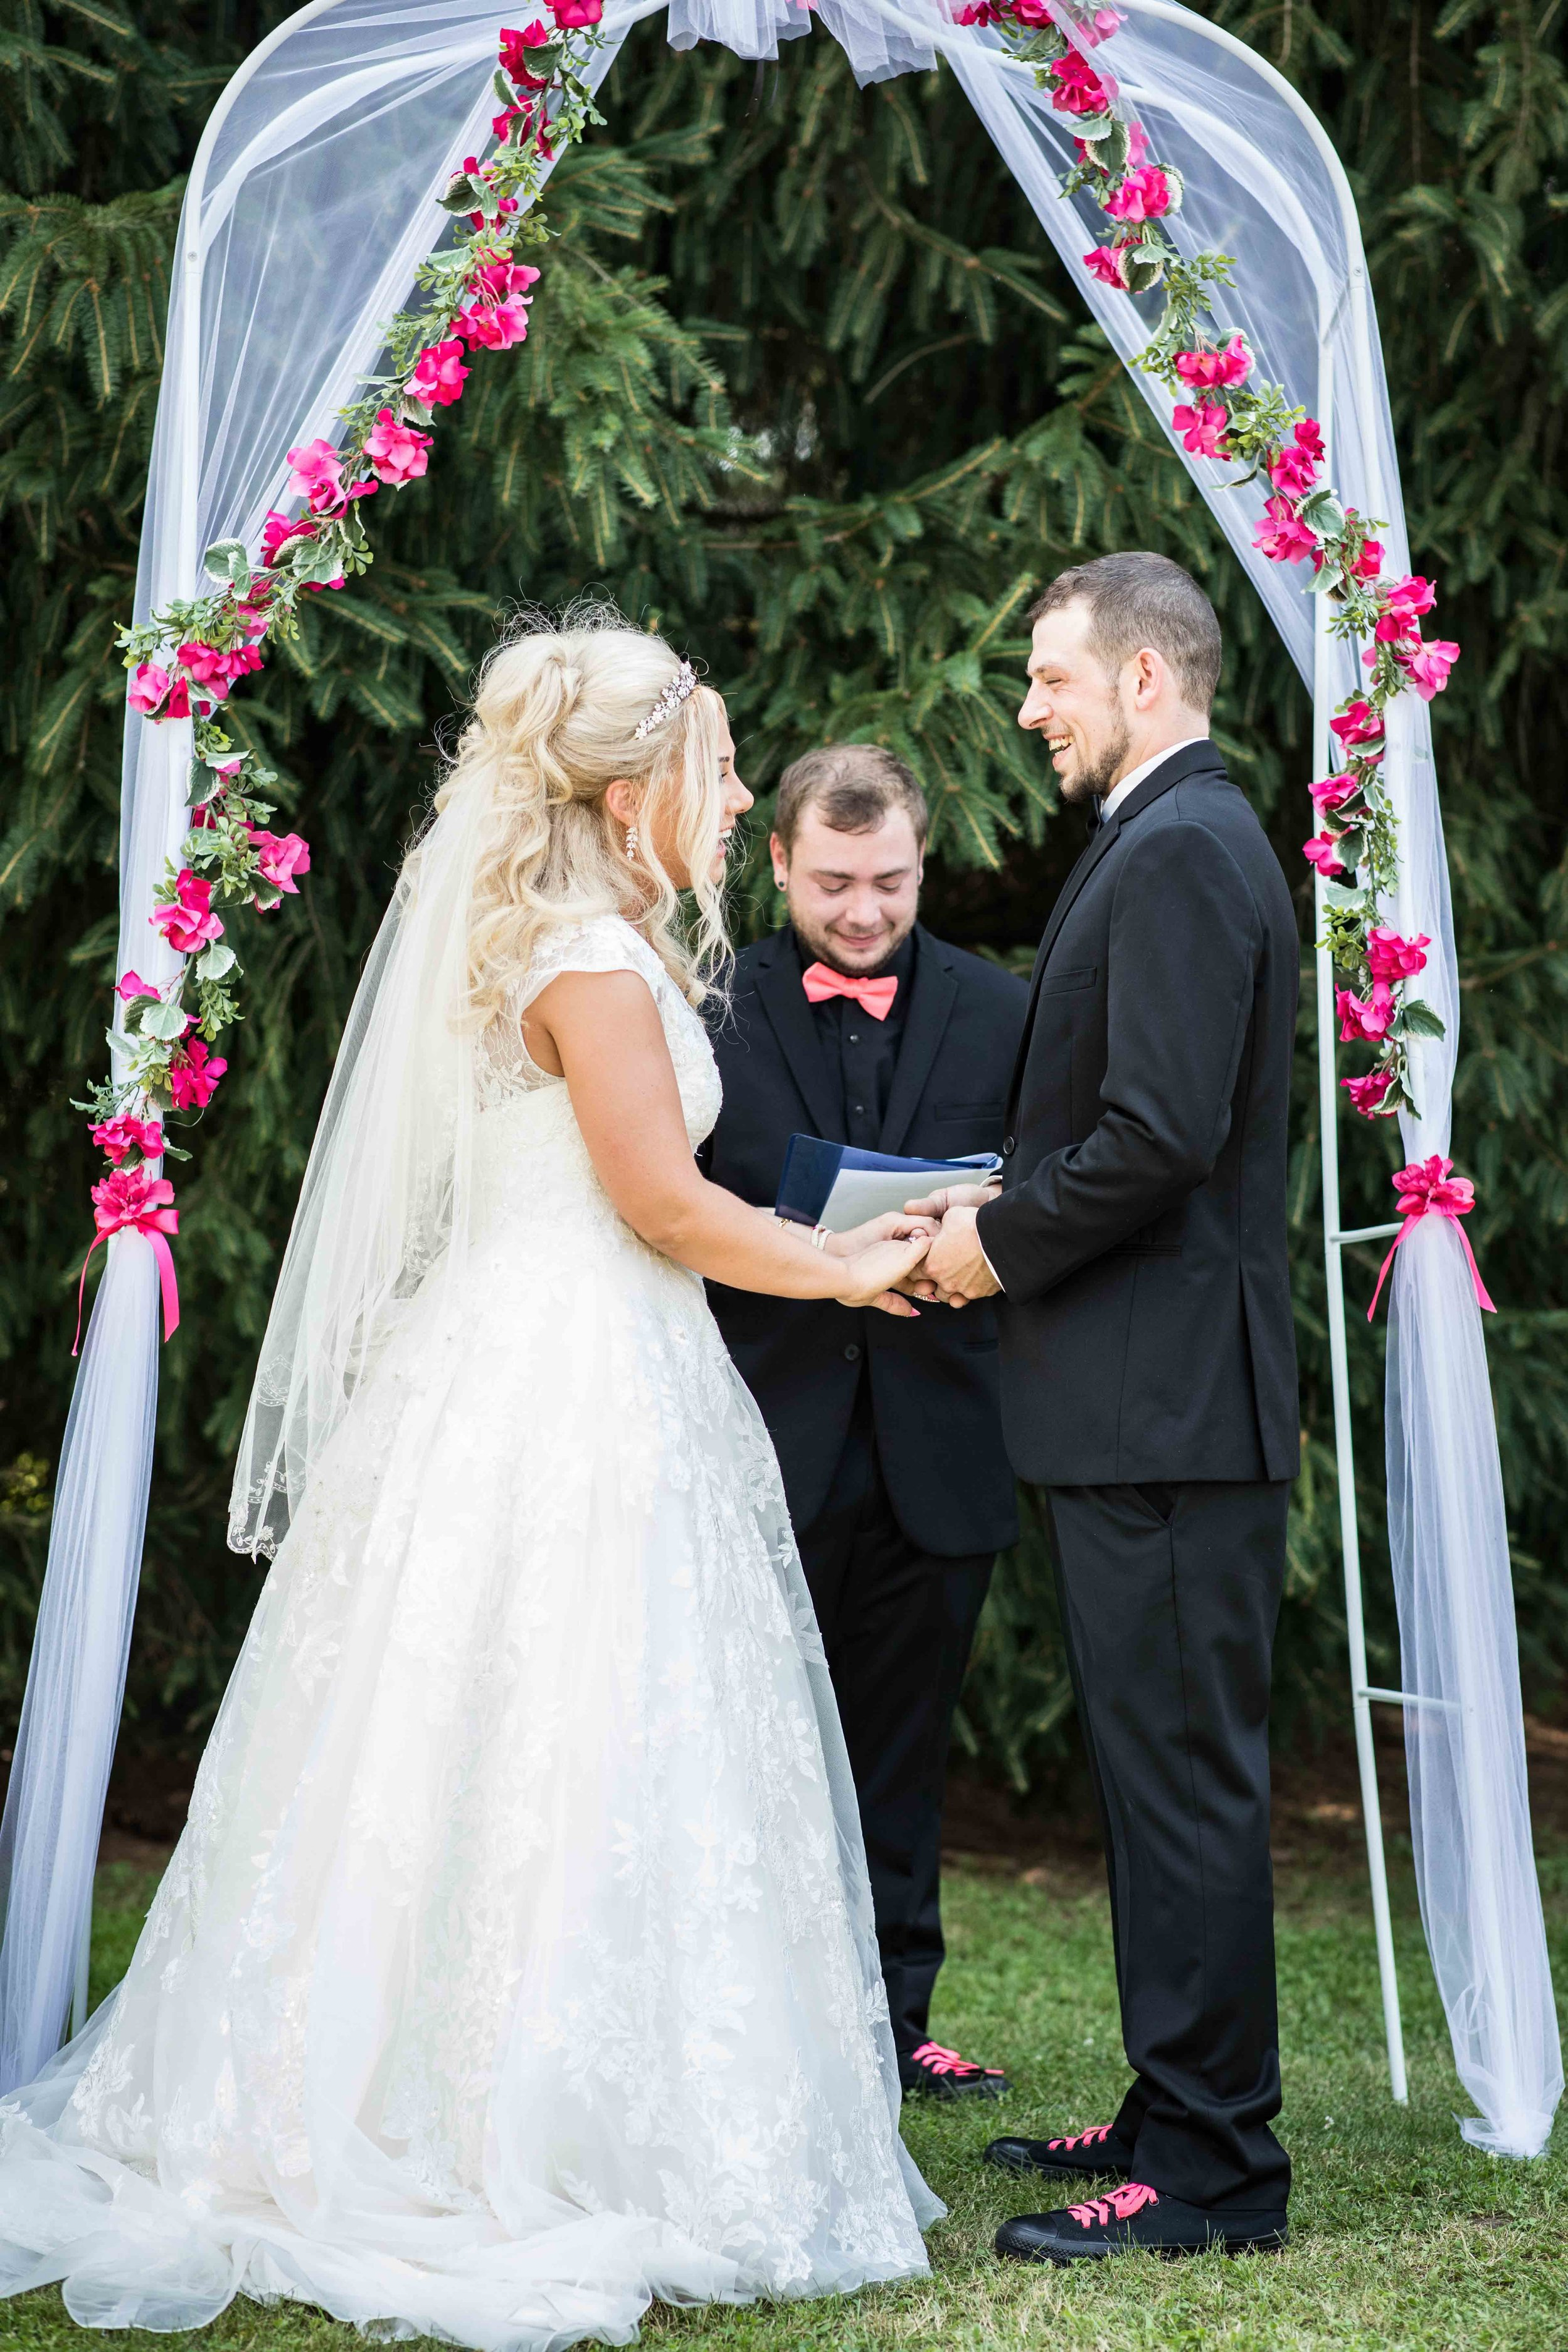 The couple holds hands as they stand together about to be wed